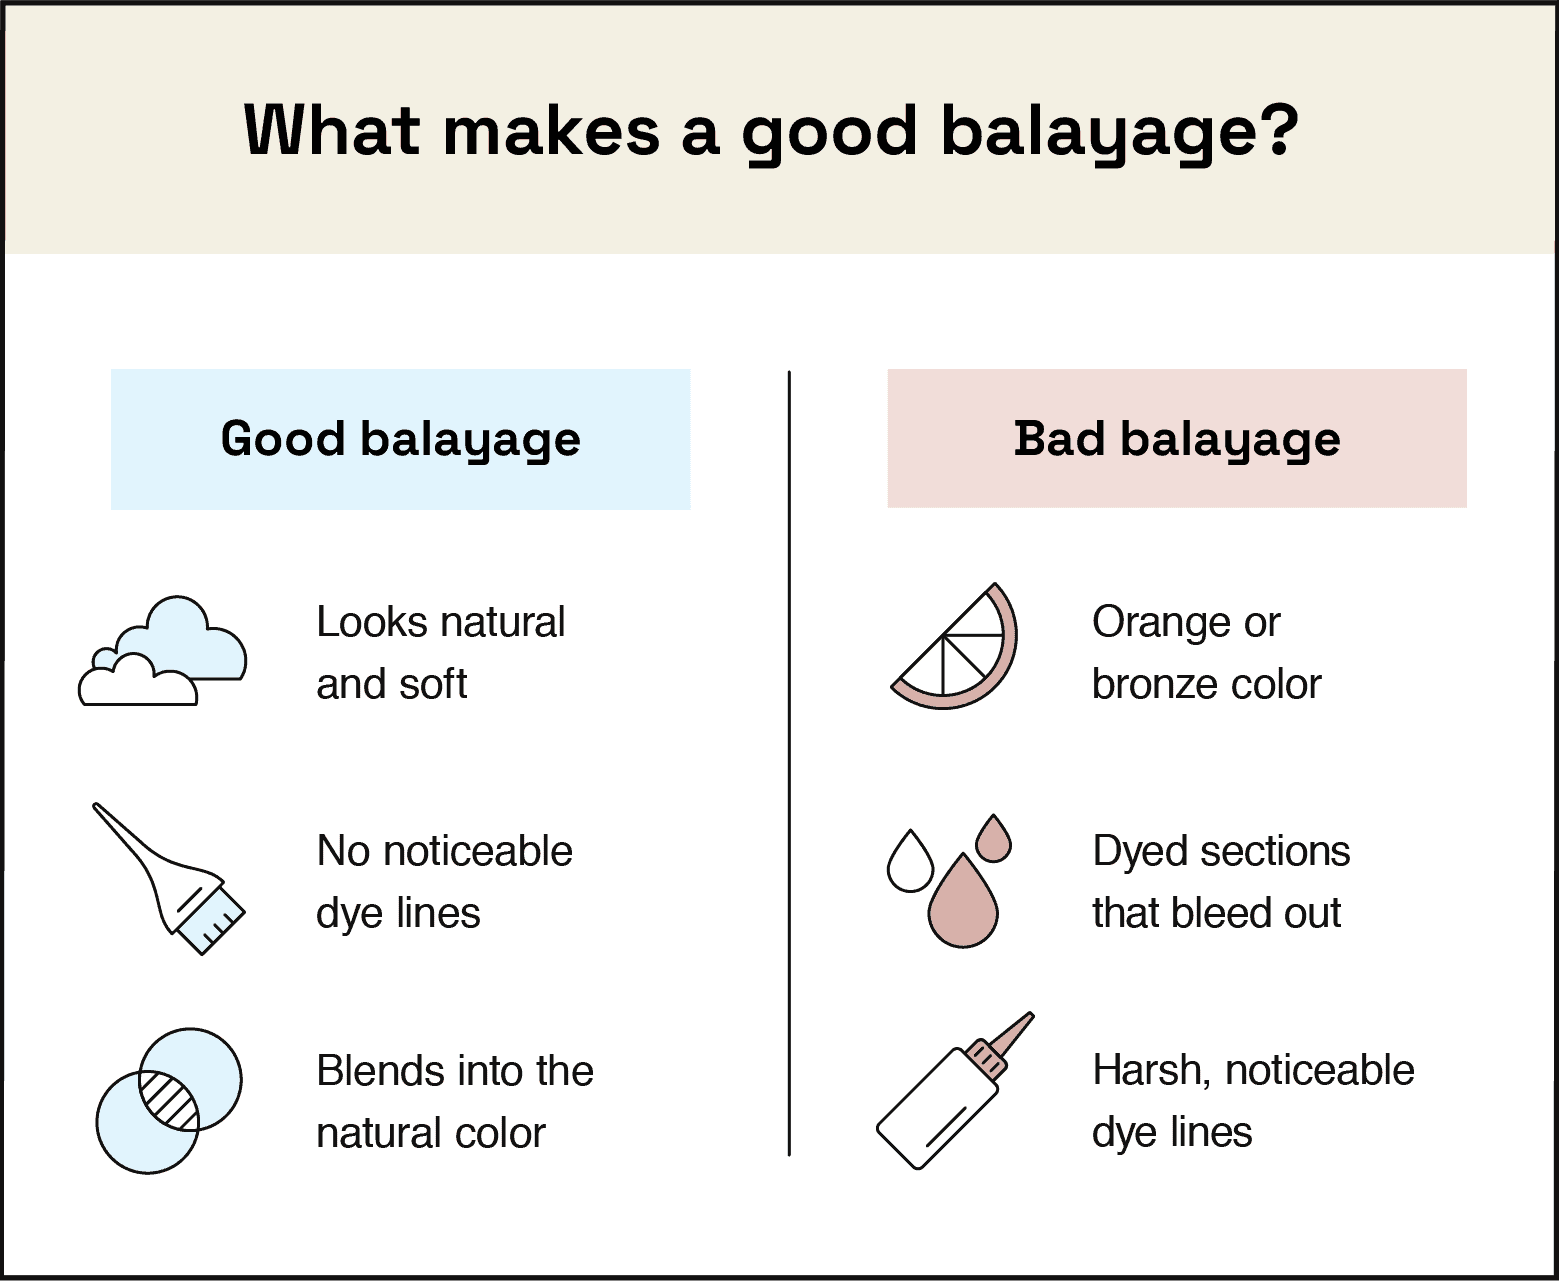 image comparing what makes a good balayage